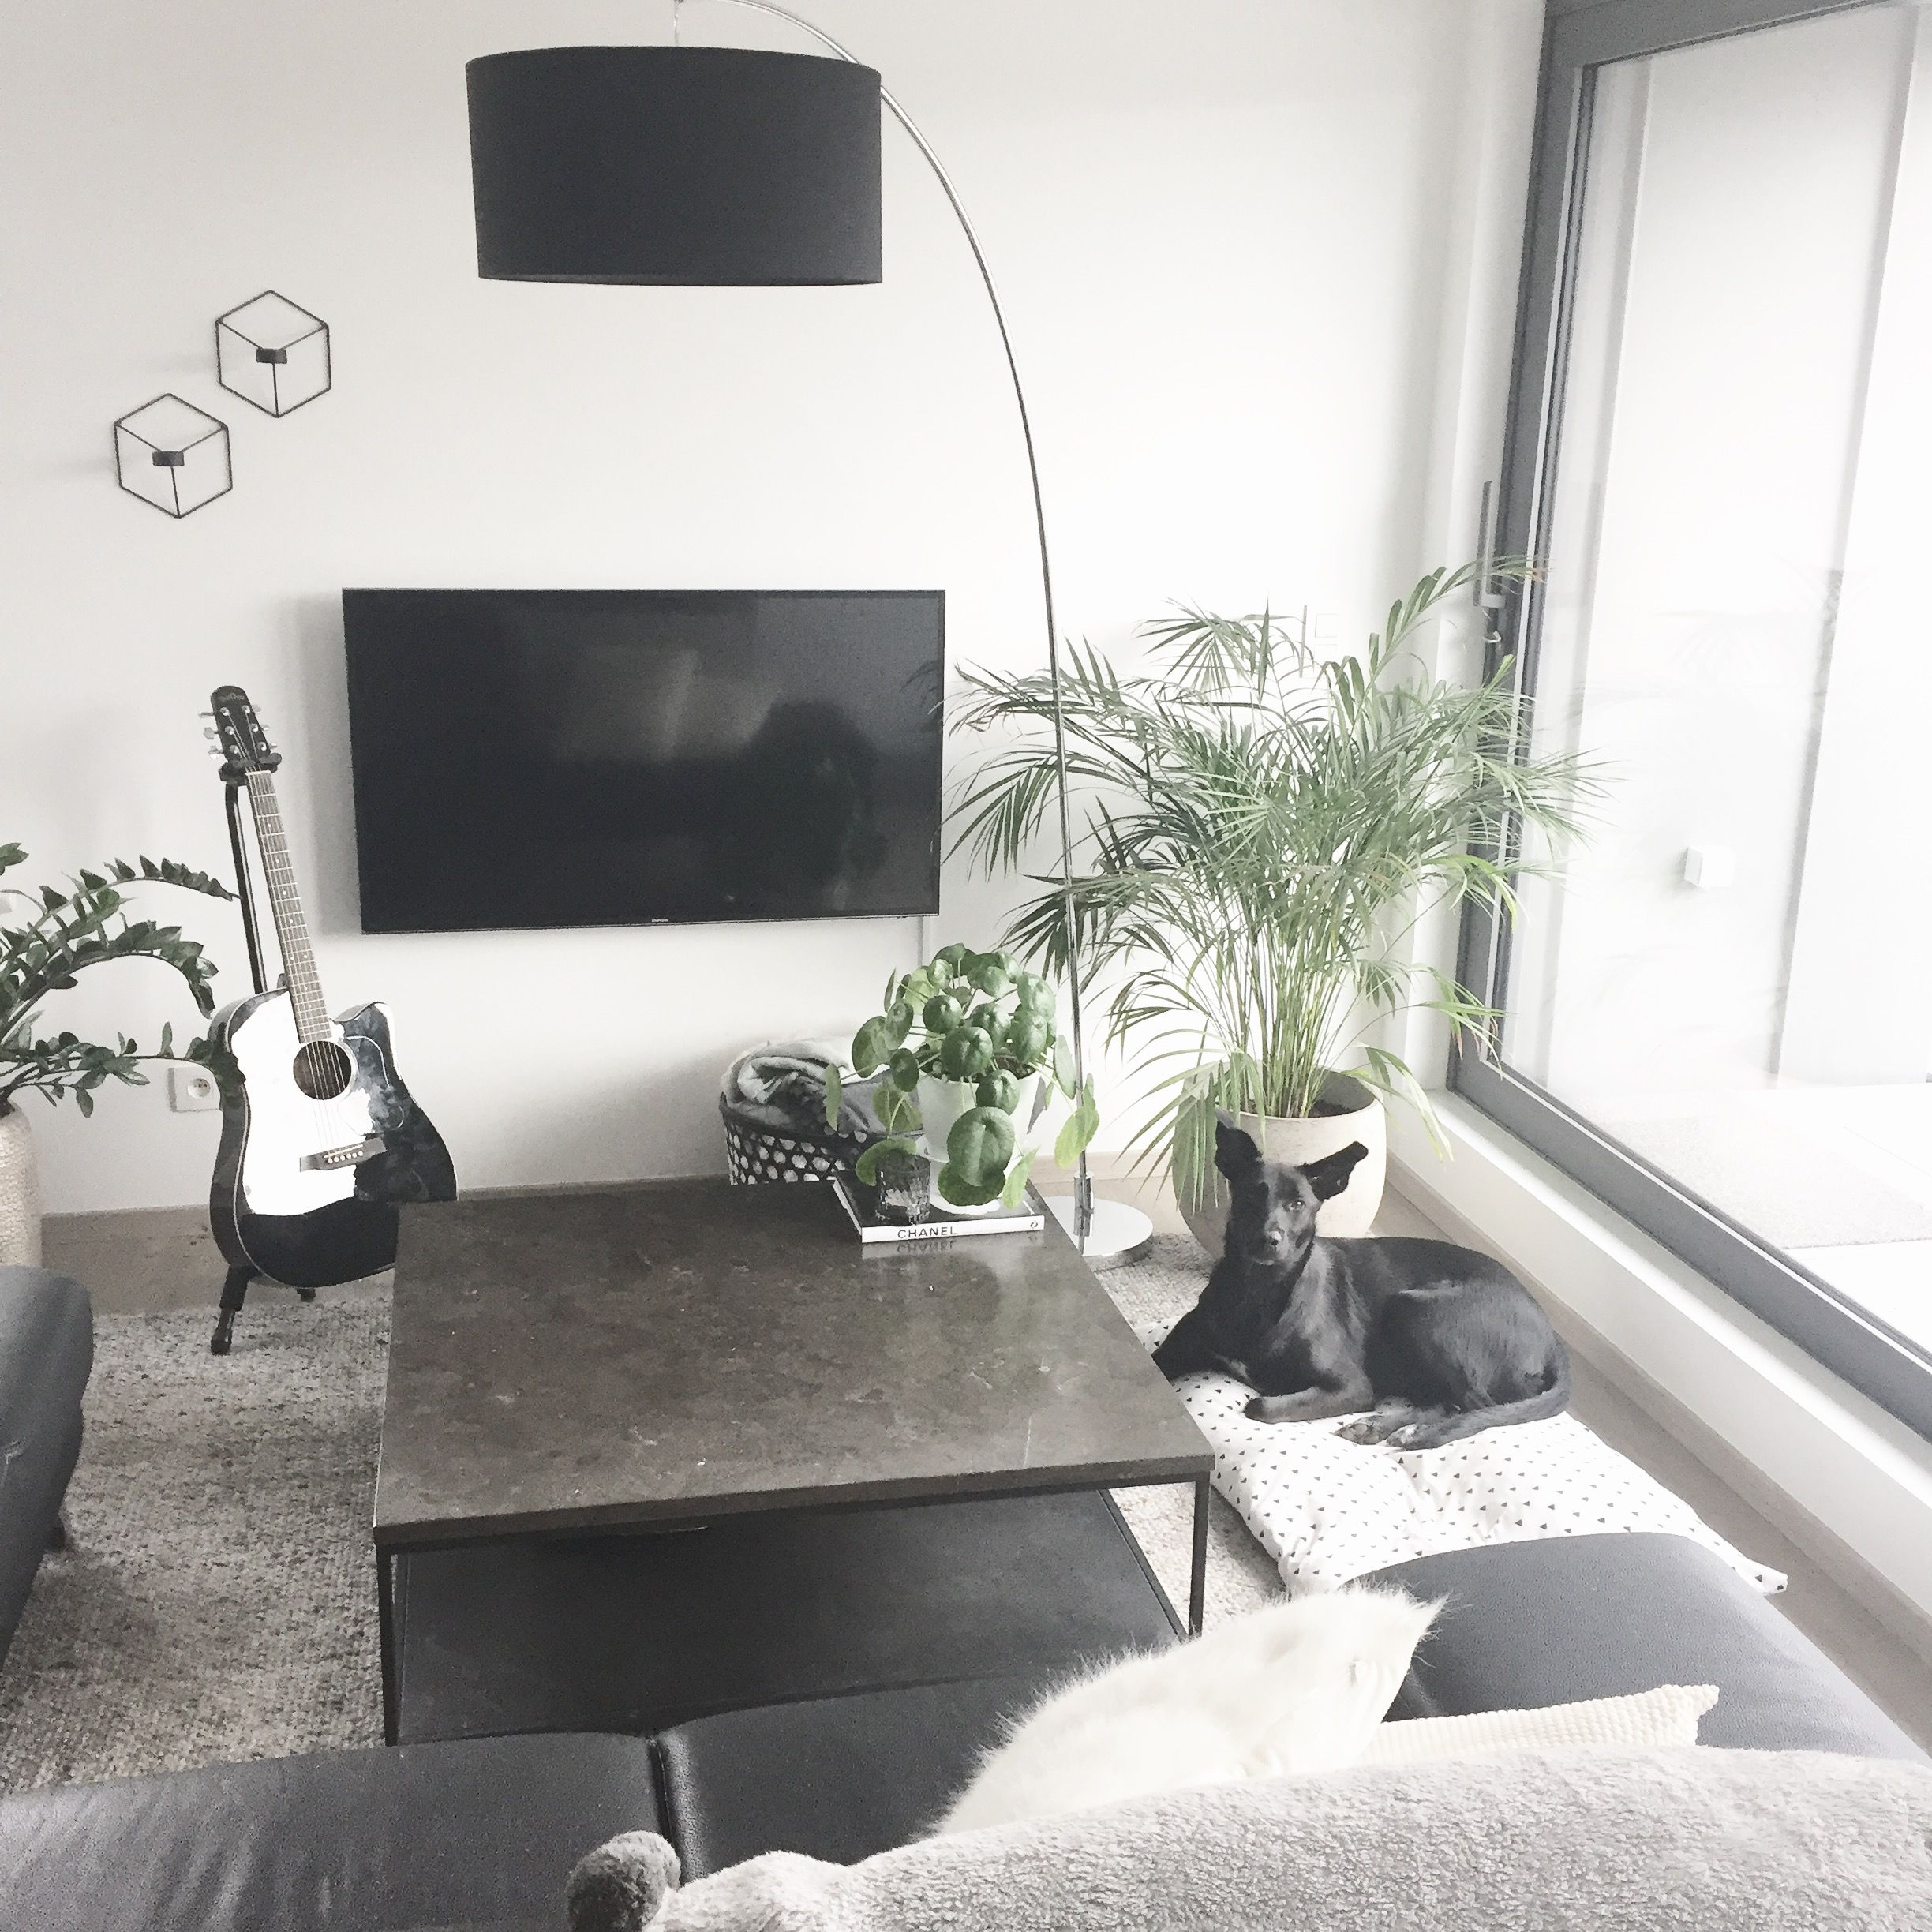 Lounge room salon coffee table plants guitar lamp lounge room salon coffee table plants guitar lamp black white geotapseo Gallery